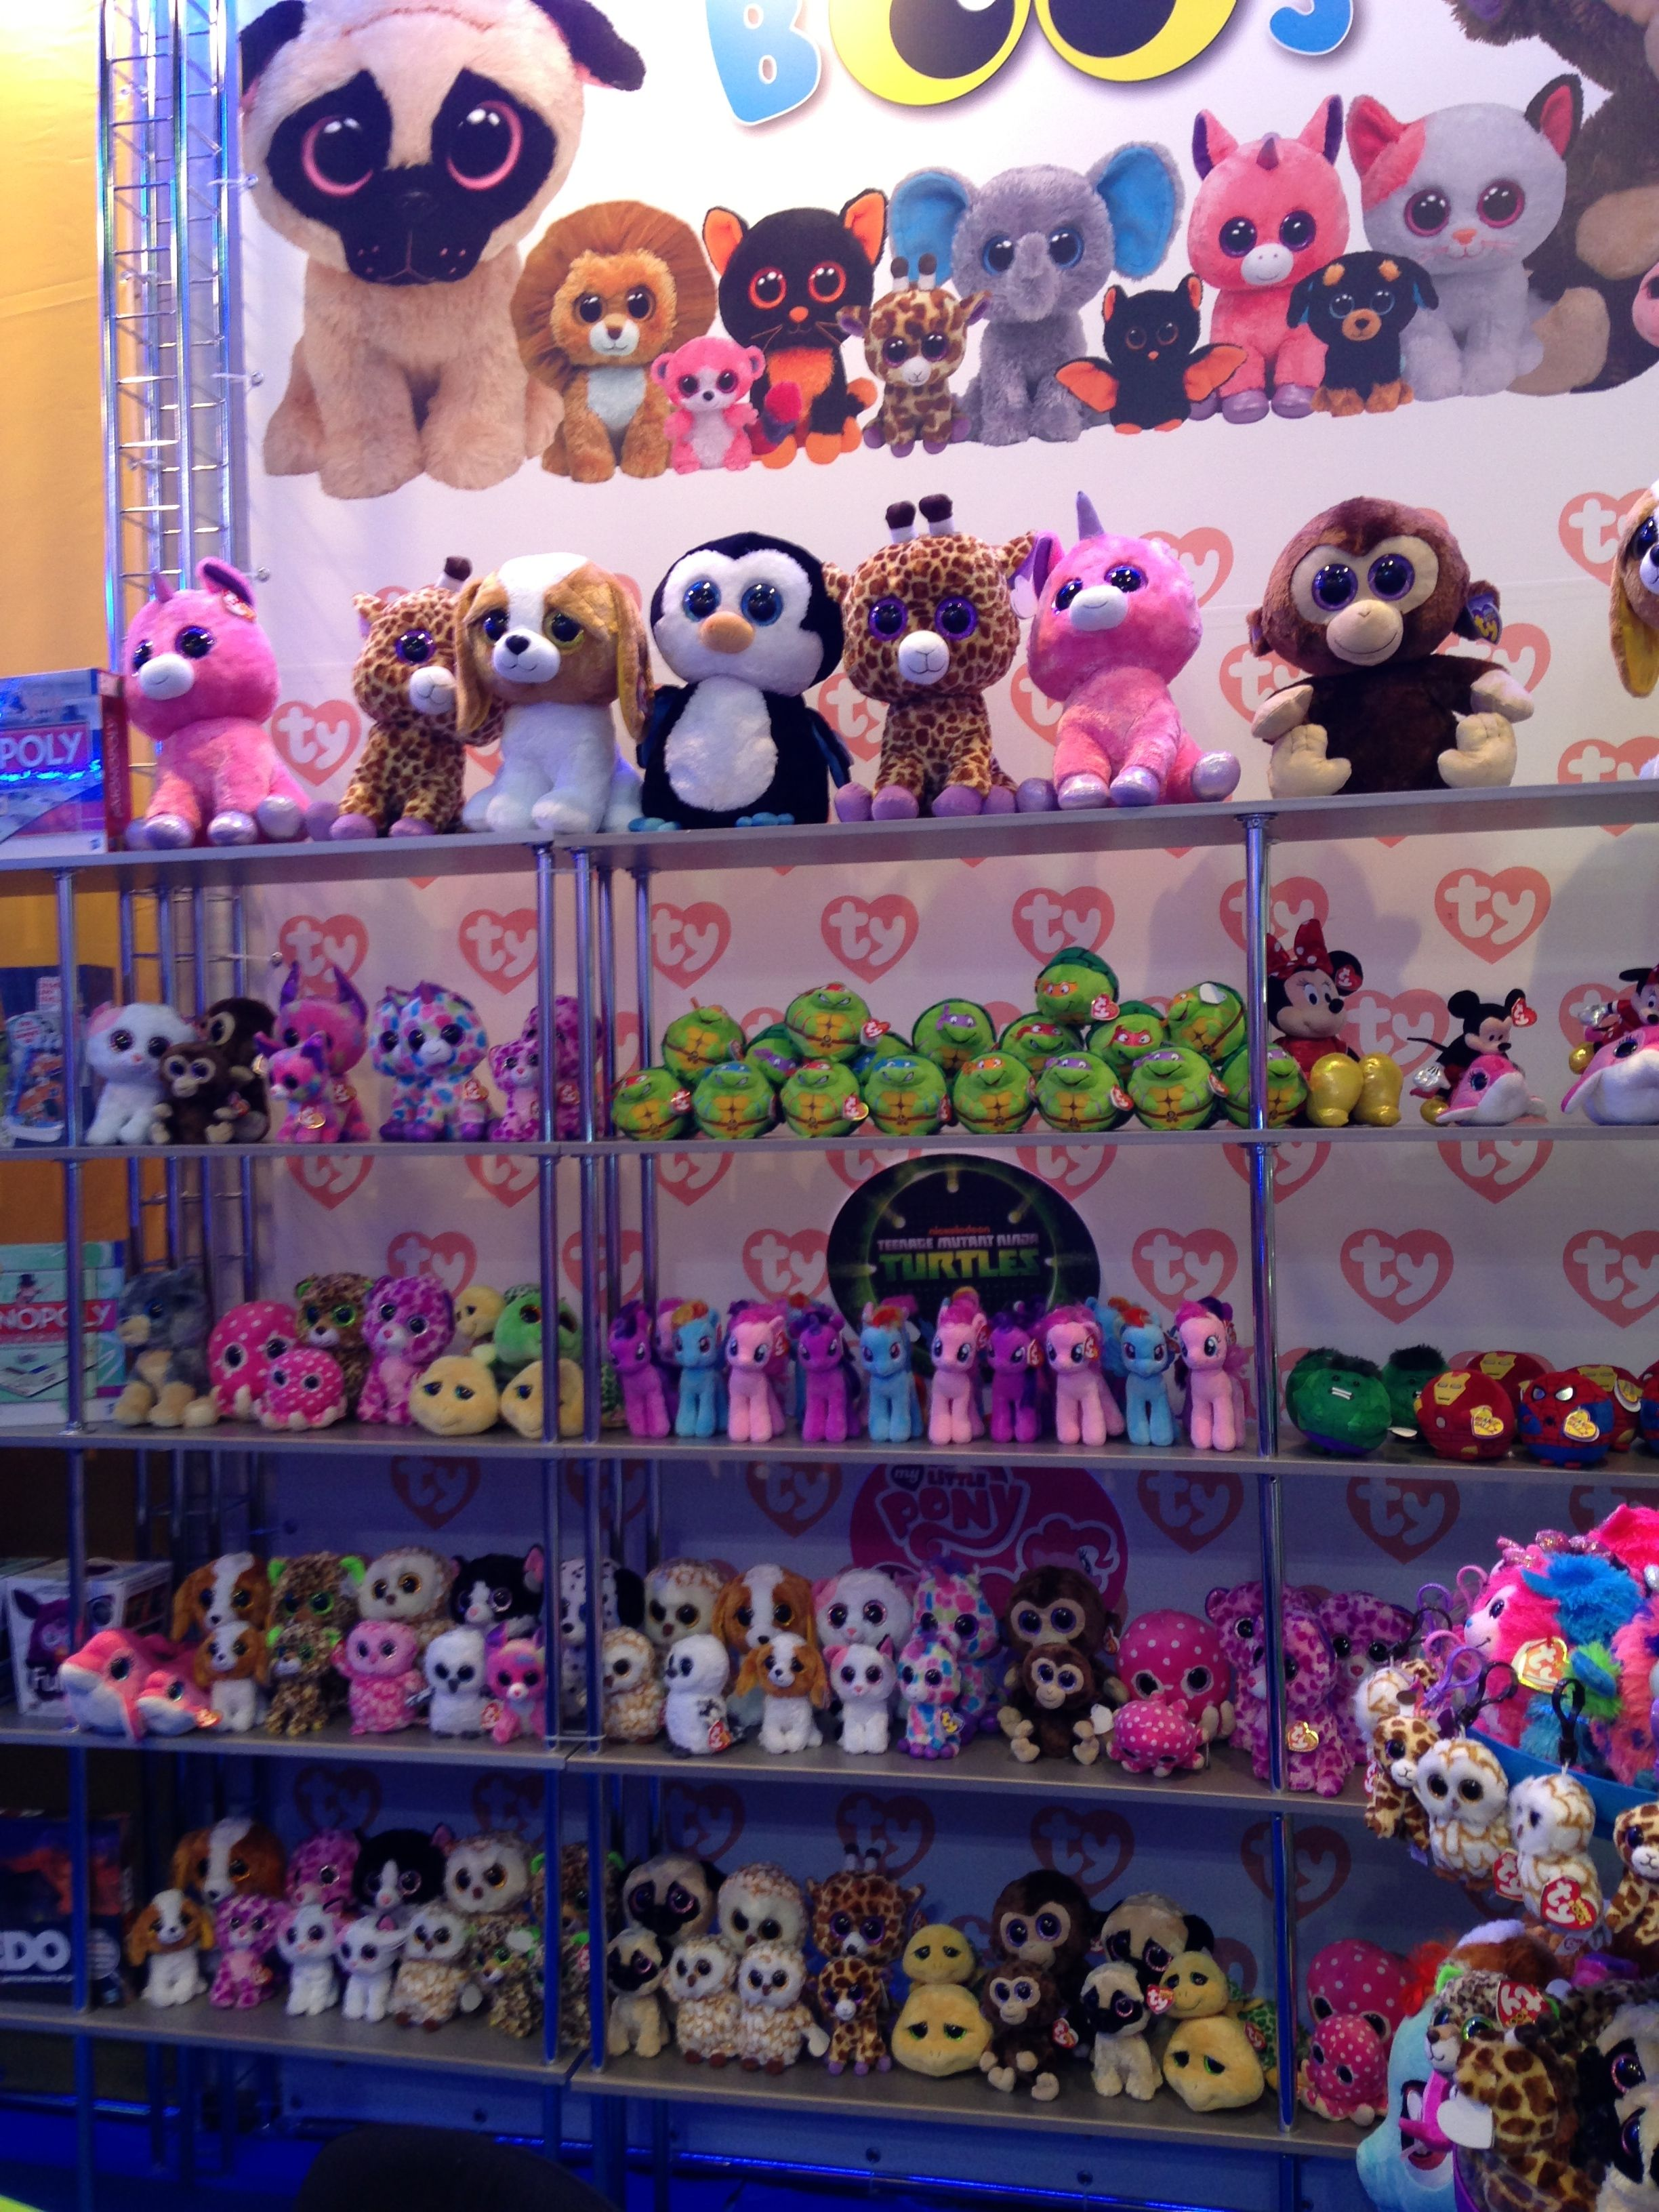 ty beanie boos at justice - Google Search  660f1cd0558d